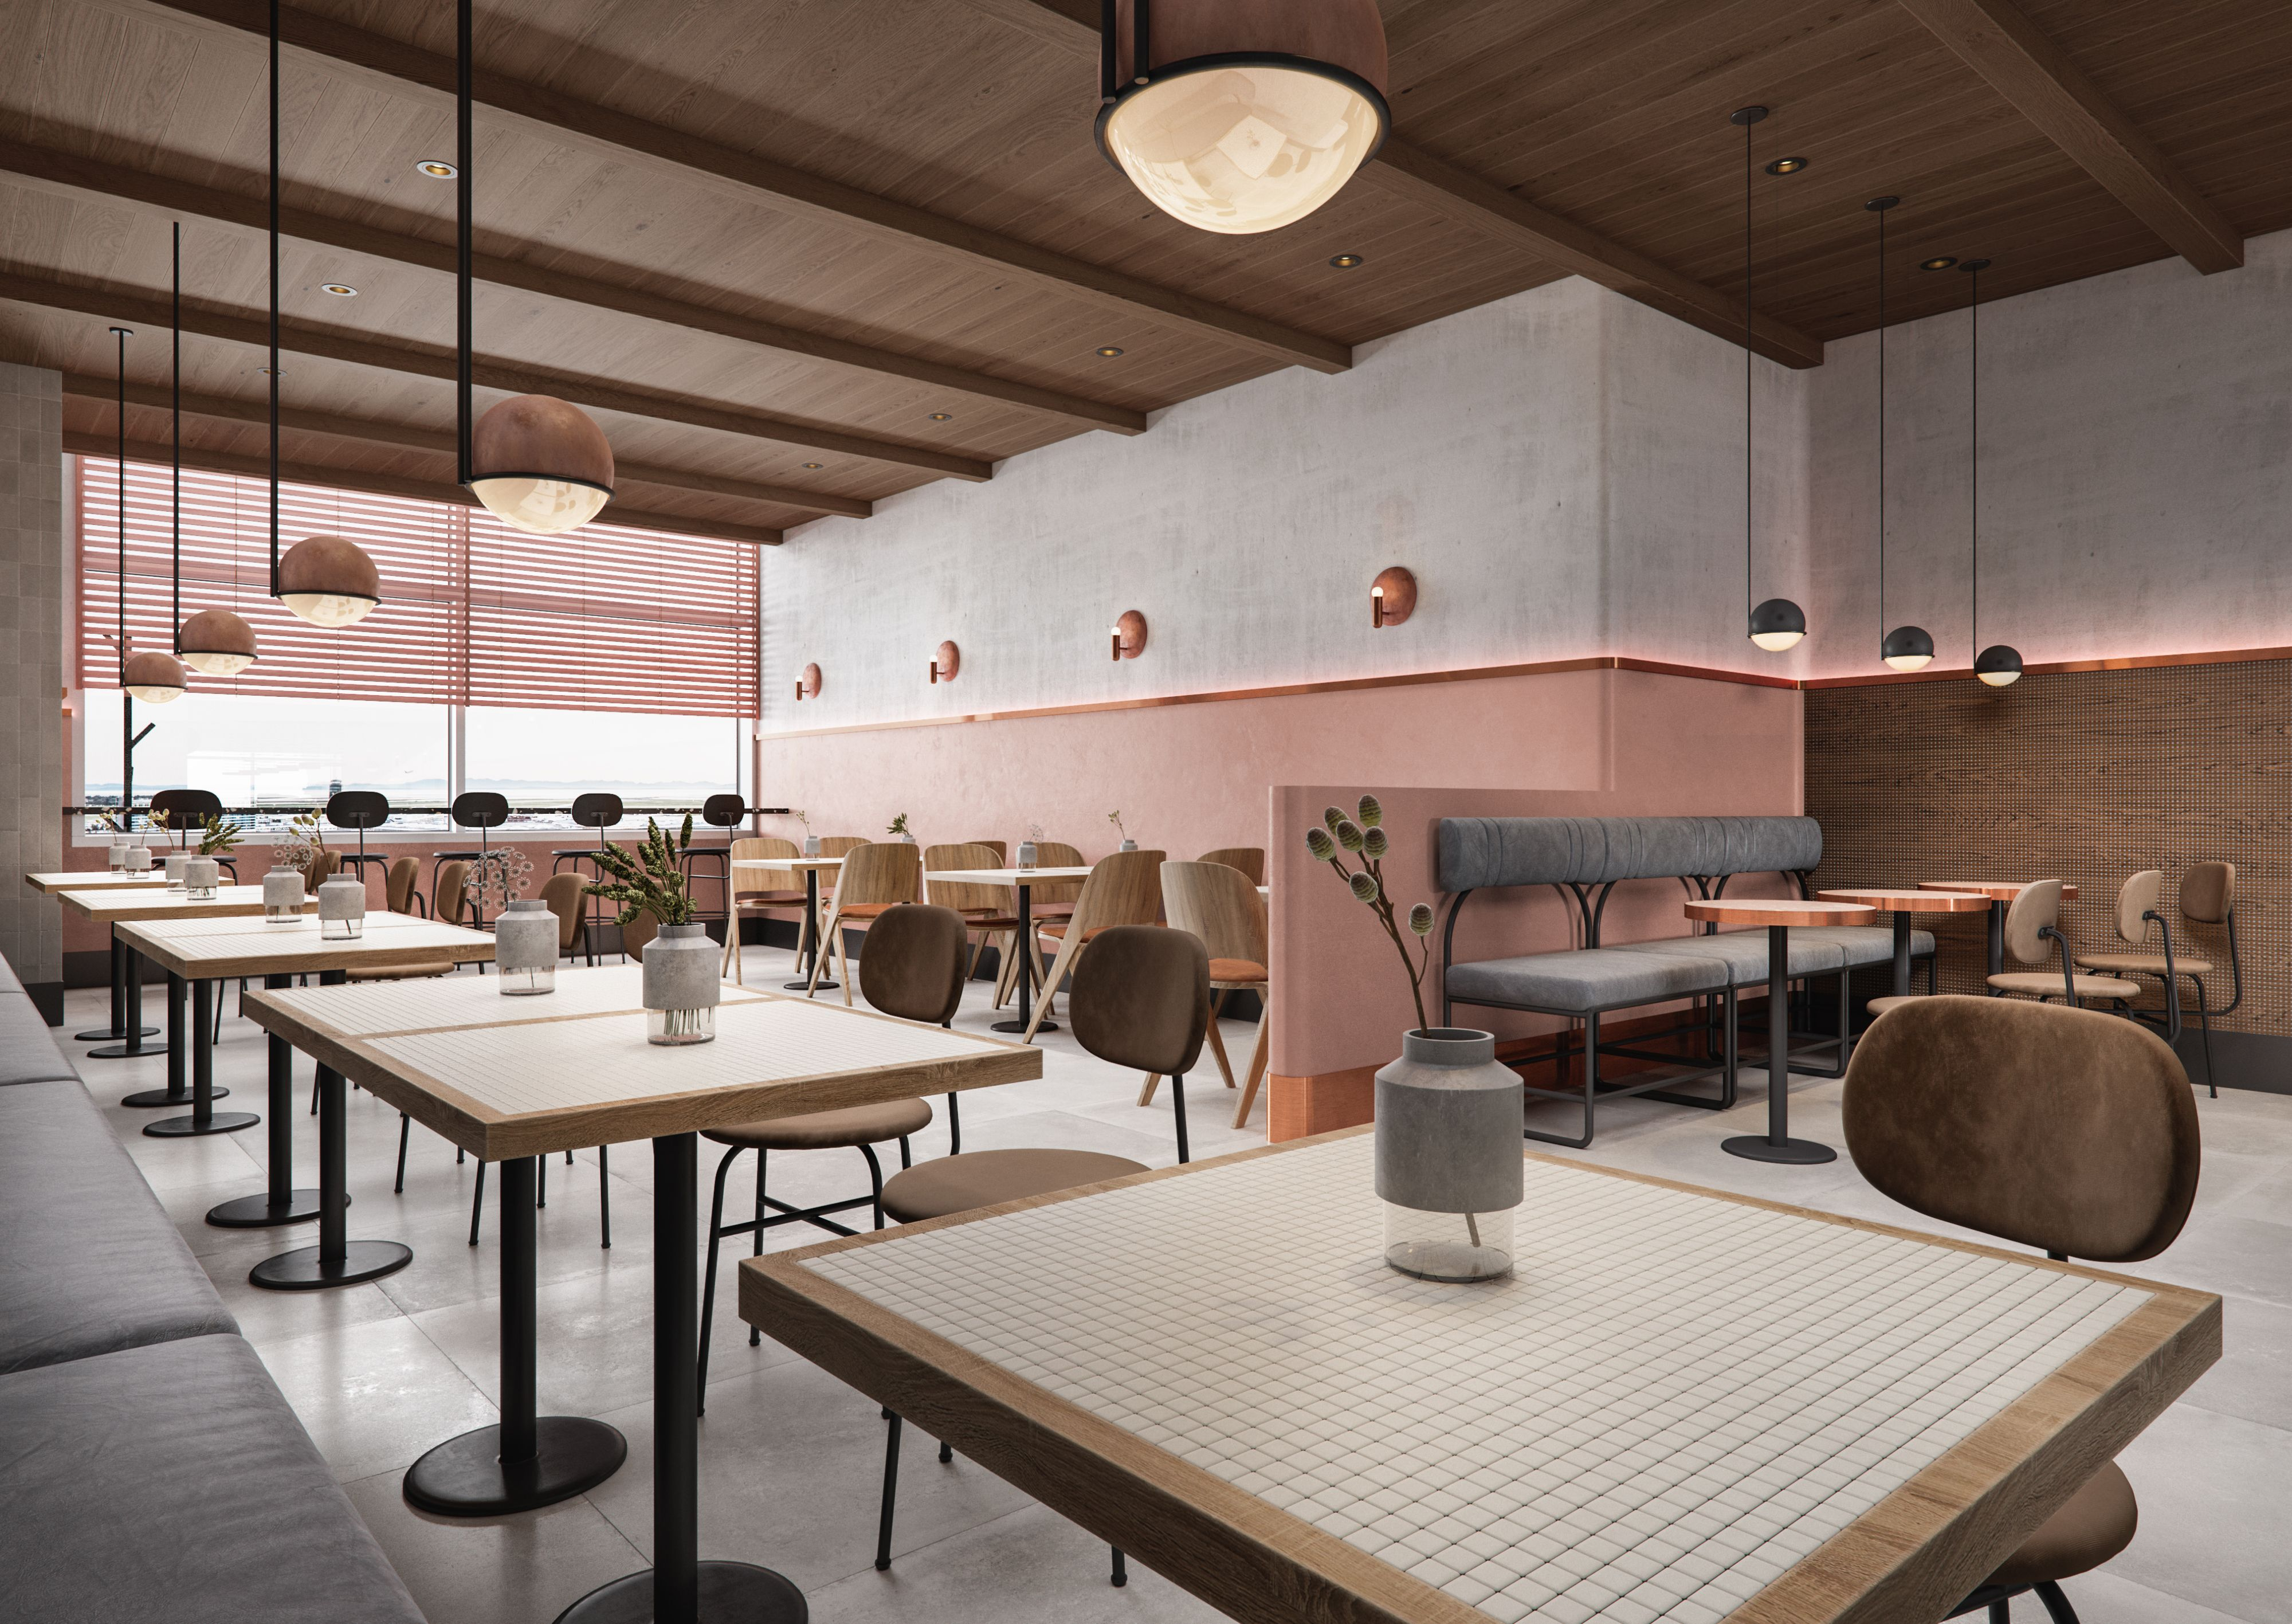 Coffee Shop Interior Design By Asthetiquegroup With Images